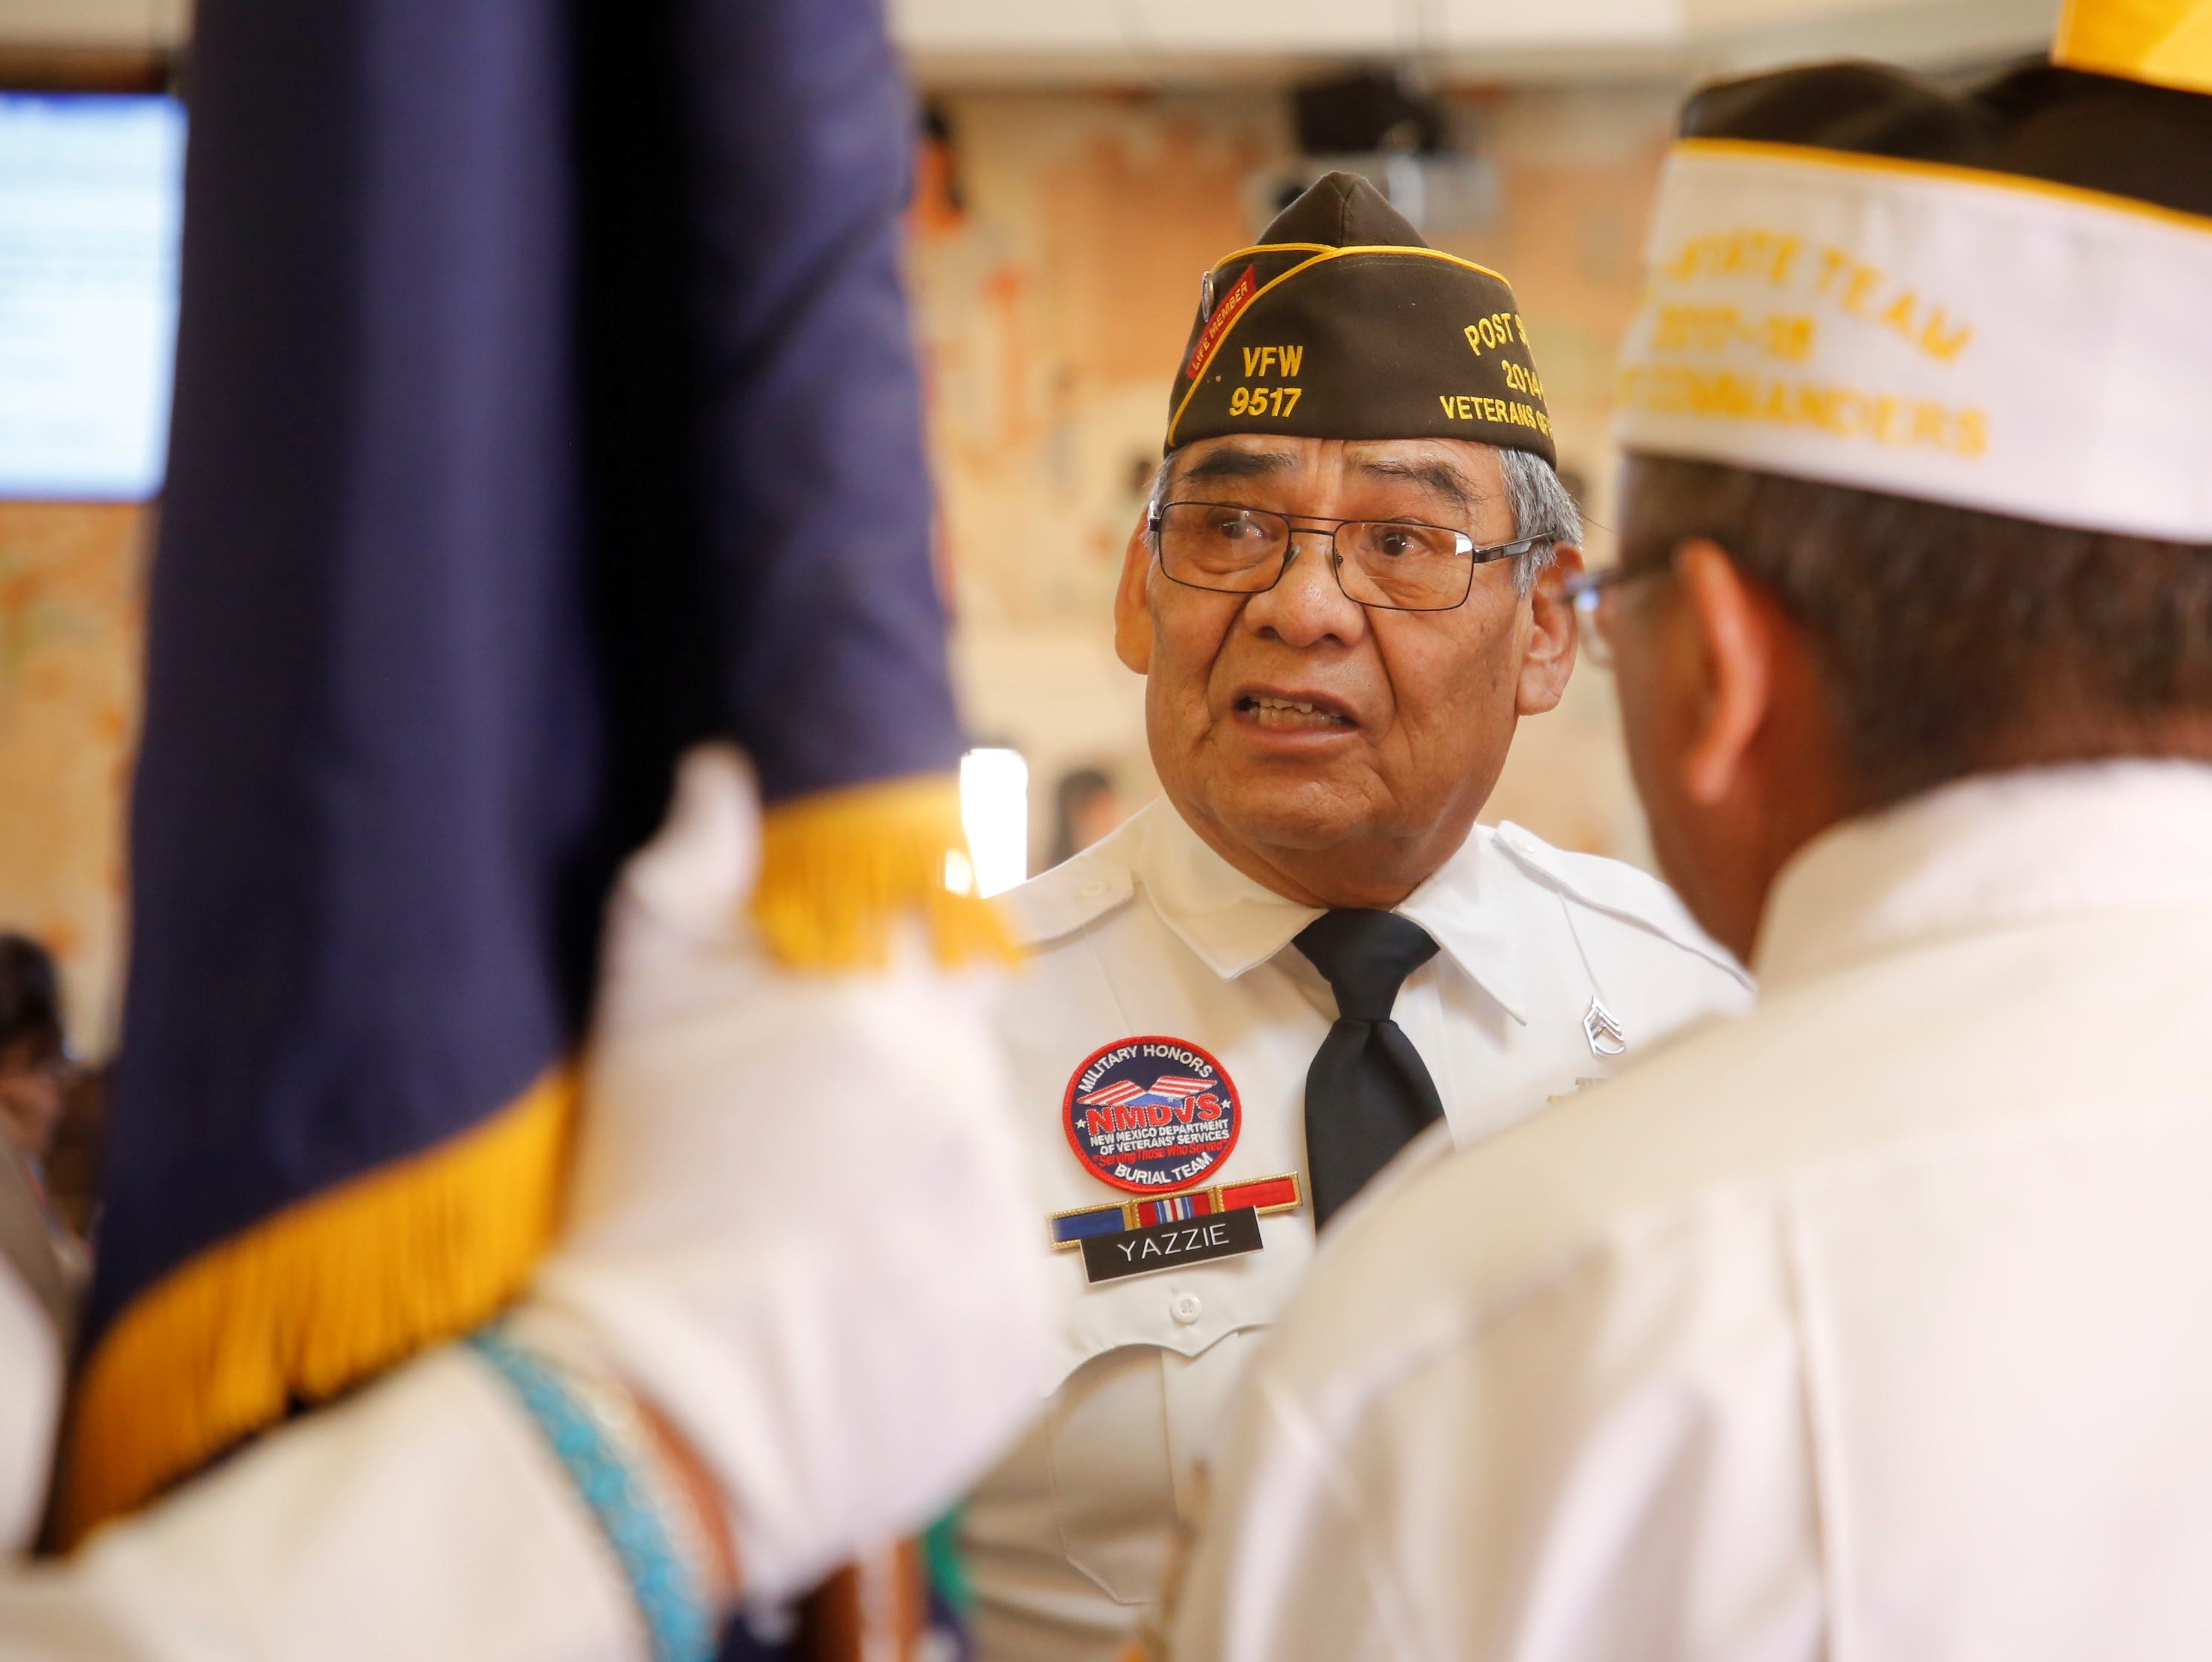 Shiprock Veterans of Foreign Wars Post 9517 Trustee Tommie Yazzie provides instructions to members before the start of the Navajo Nation Council's winter session on Monday in Window Rock, Ariz.